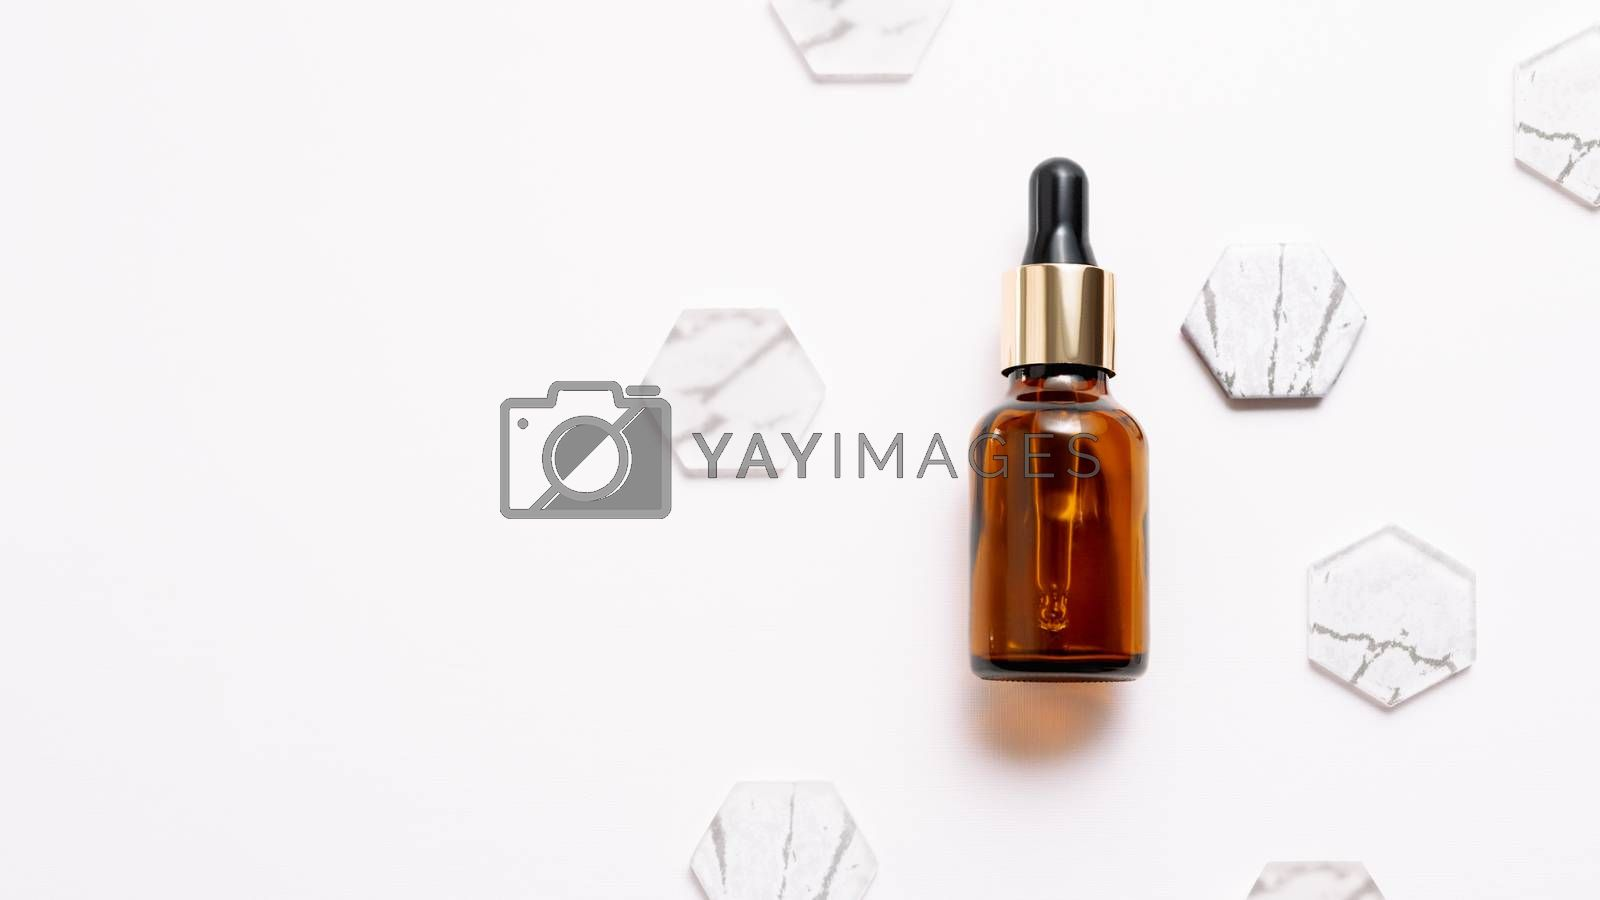 Top view on glass bottles of essential oil or cosmetic serum on white background. White copy space with decorative marble and glass hexagons.